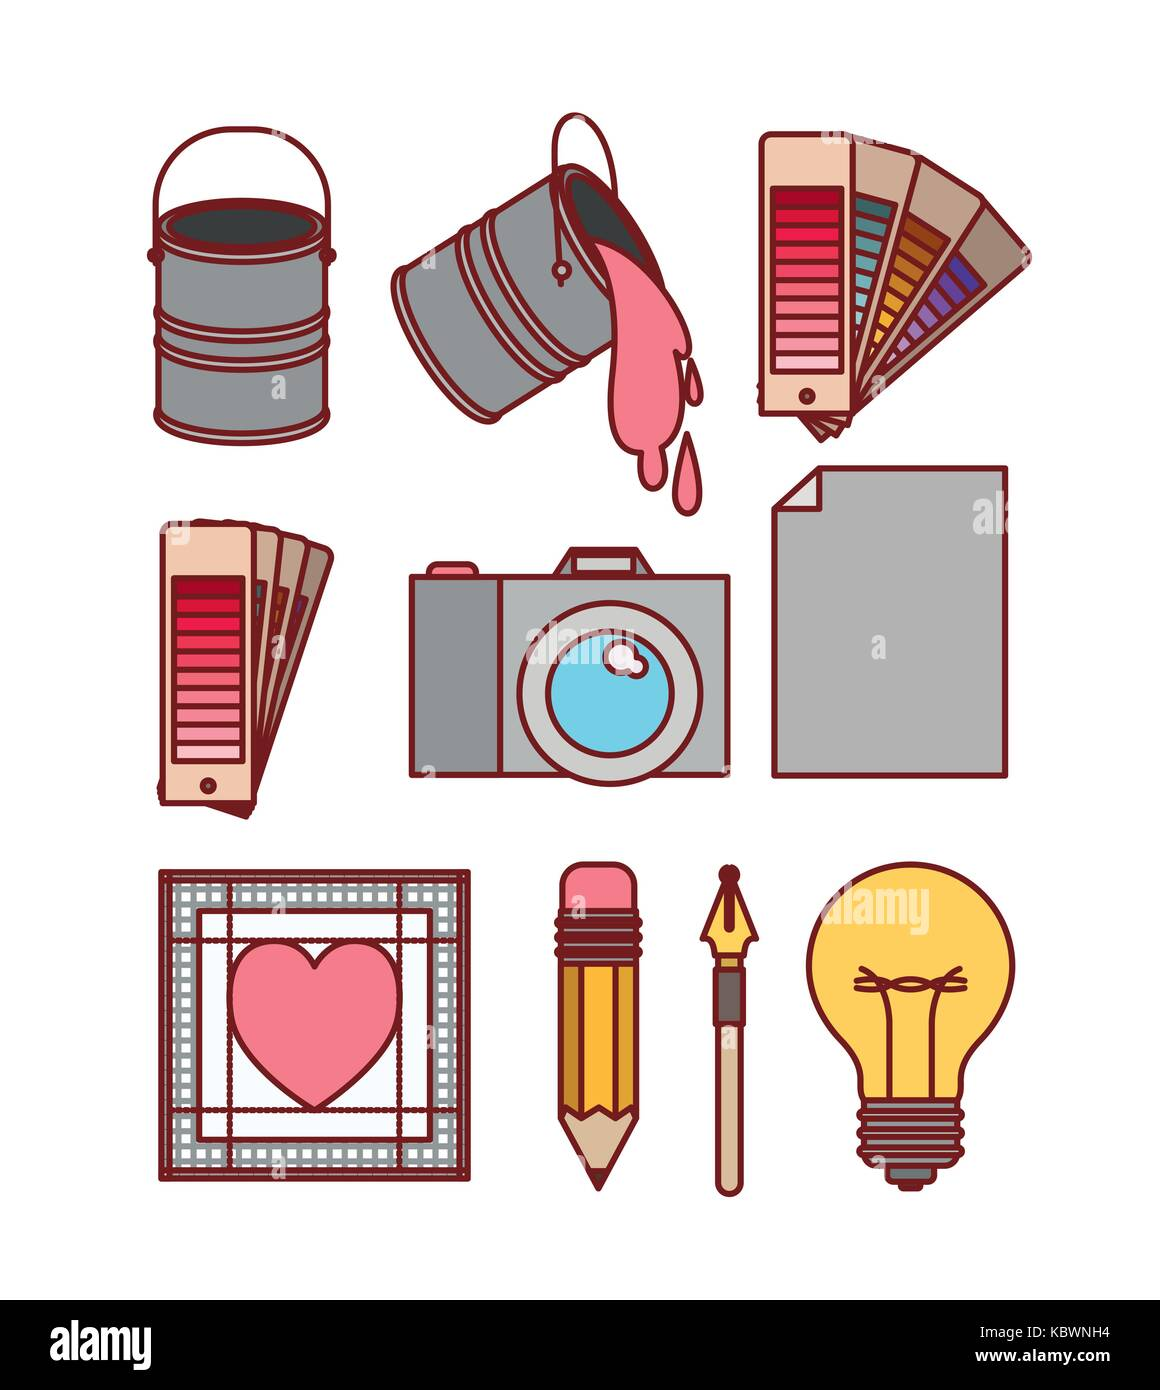 set work elements for graphic design on white background - Stock Image